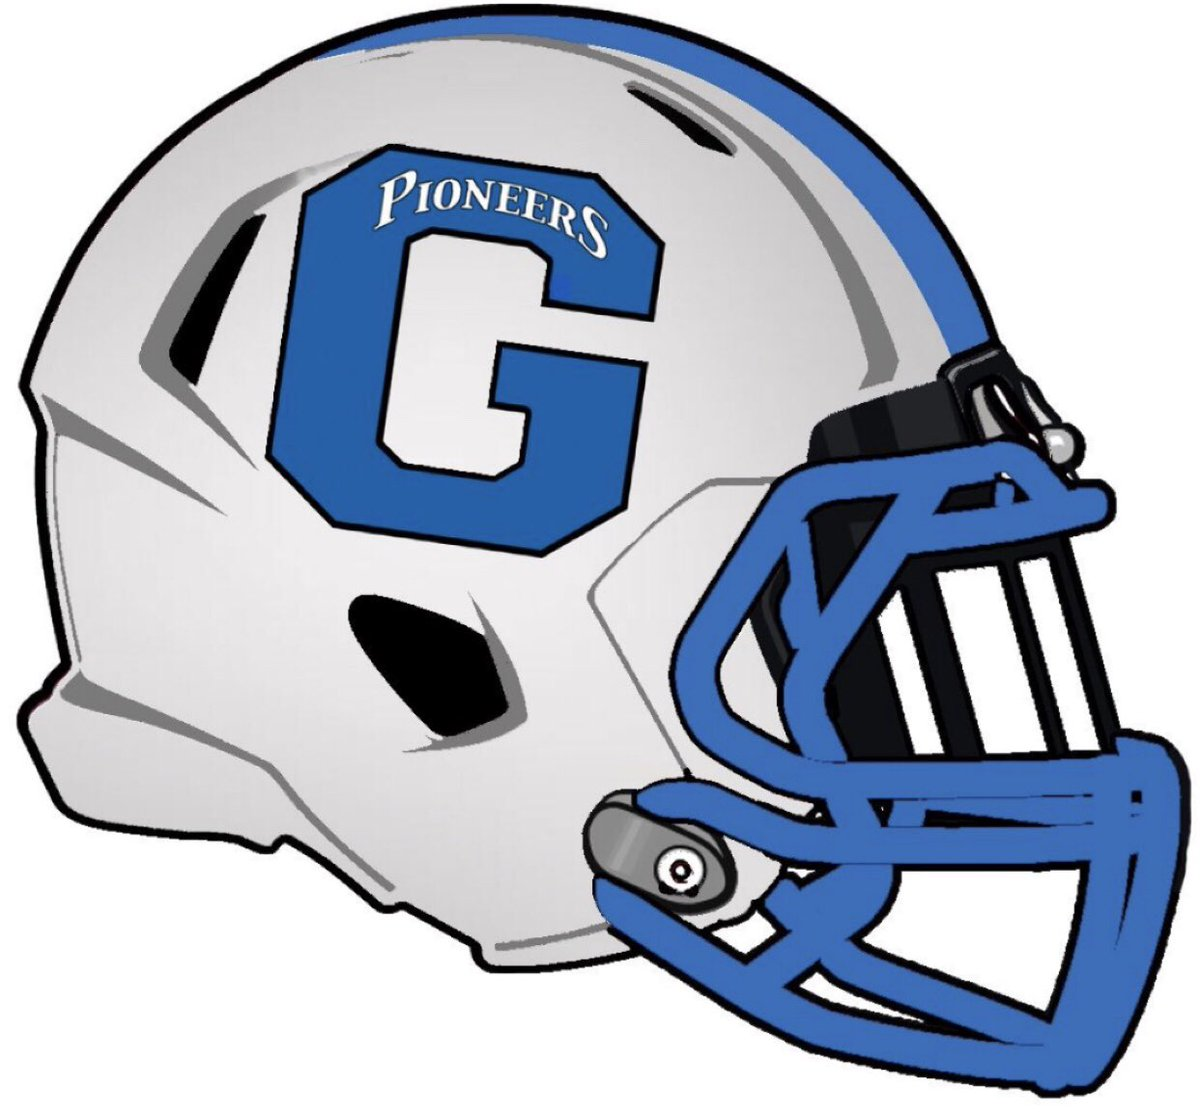 Blessed to receive my 1st offer from Glenville State!! @coachdavewalker @GSCFootball